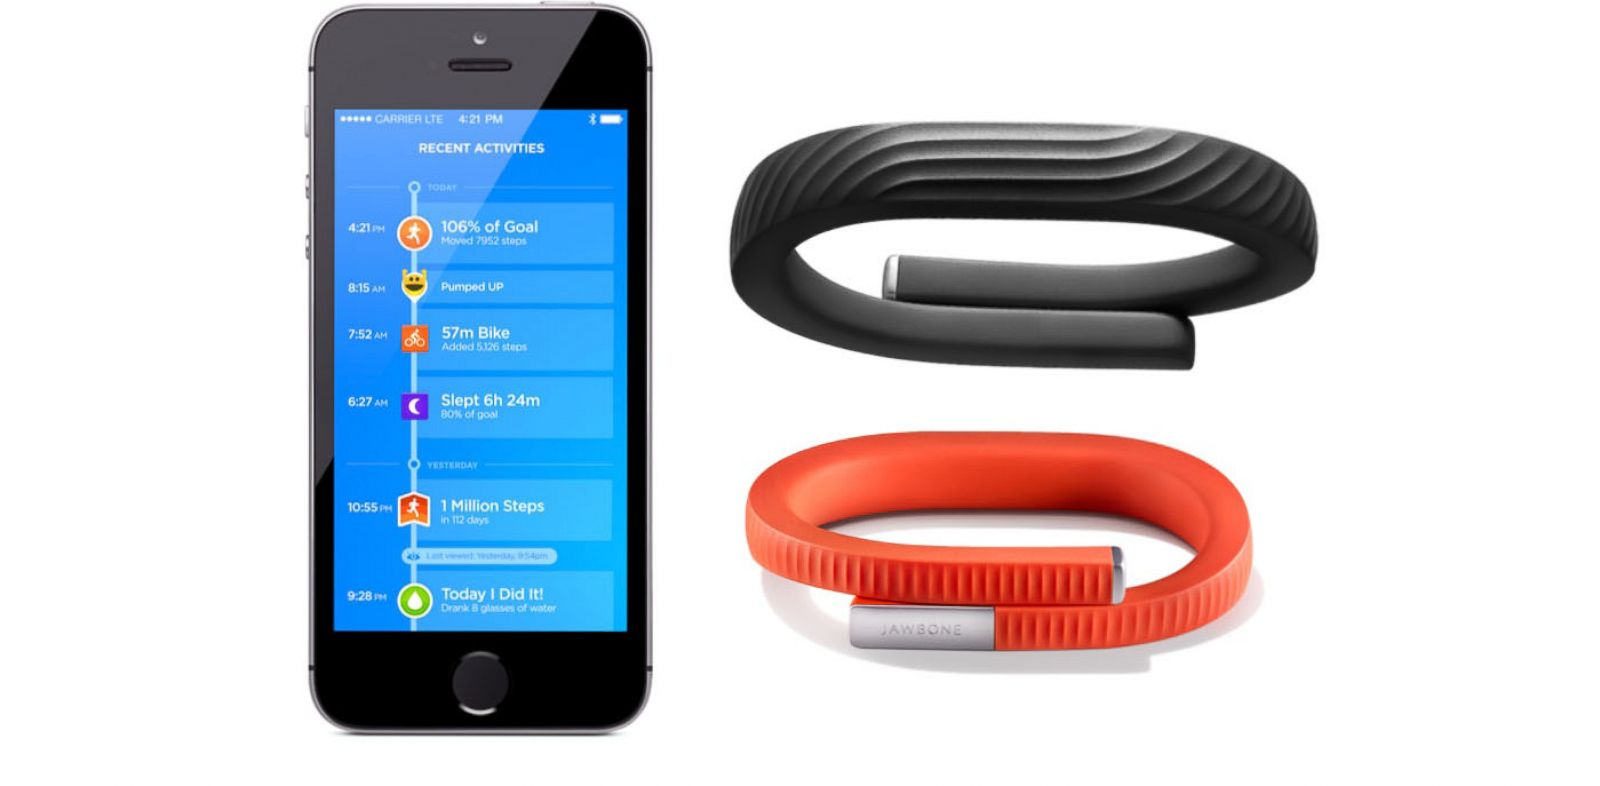 PHOTO: The Jawbone UP24 includes Bluetooth to wireless sync your fitness activity with the iPhone.